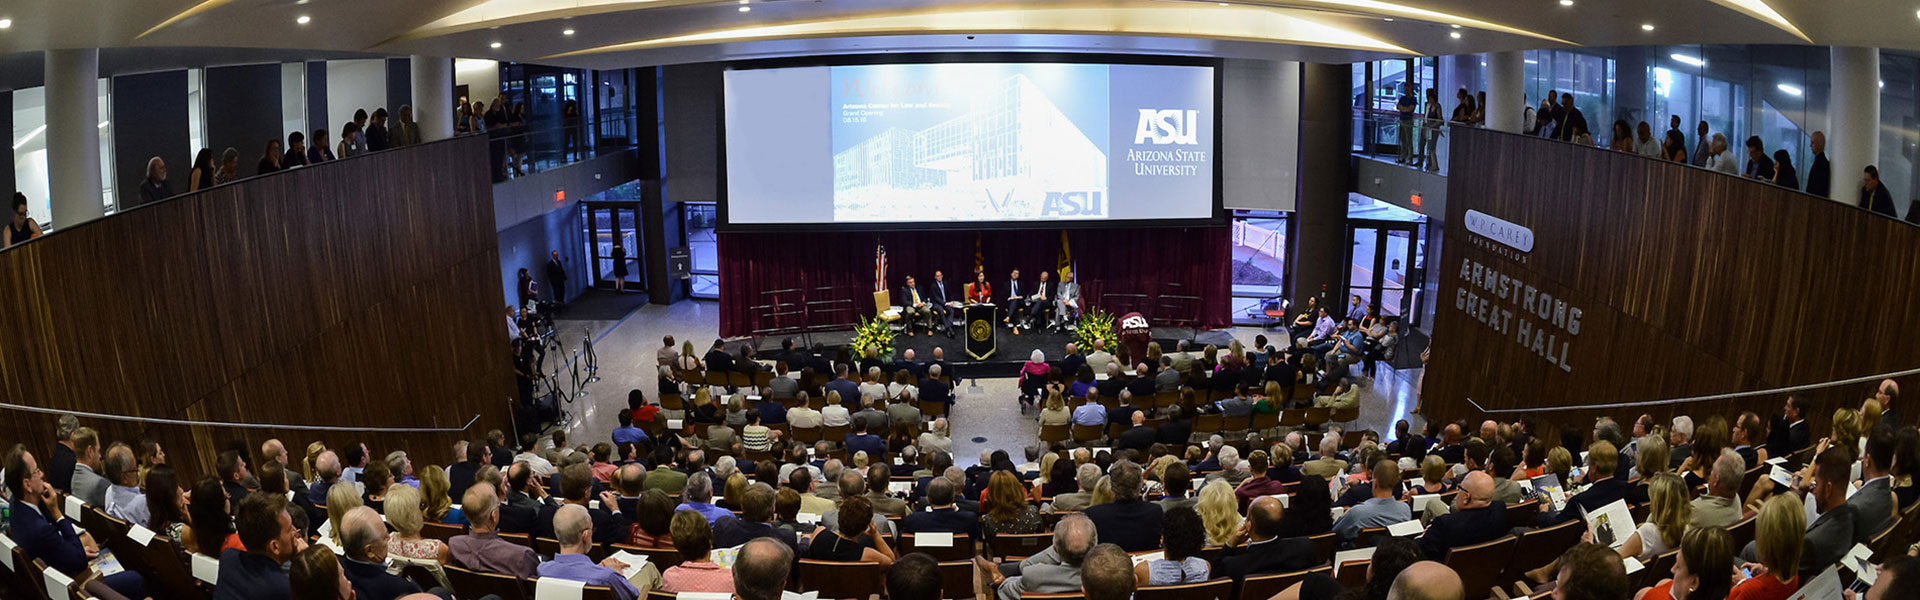 ASU Law Events and Conferences